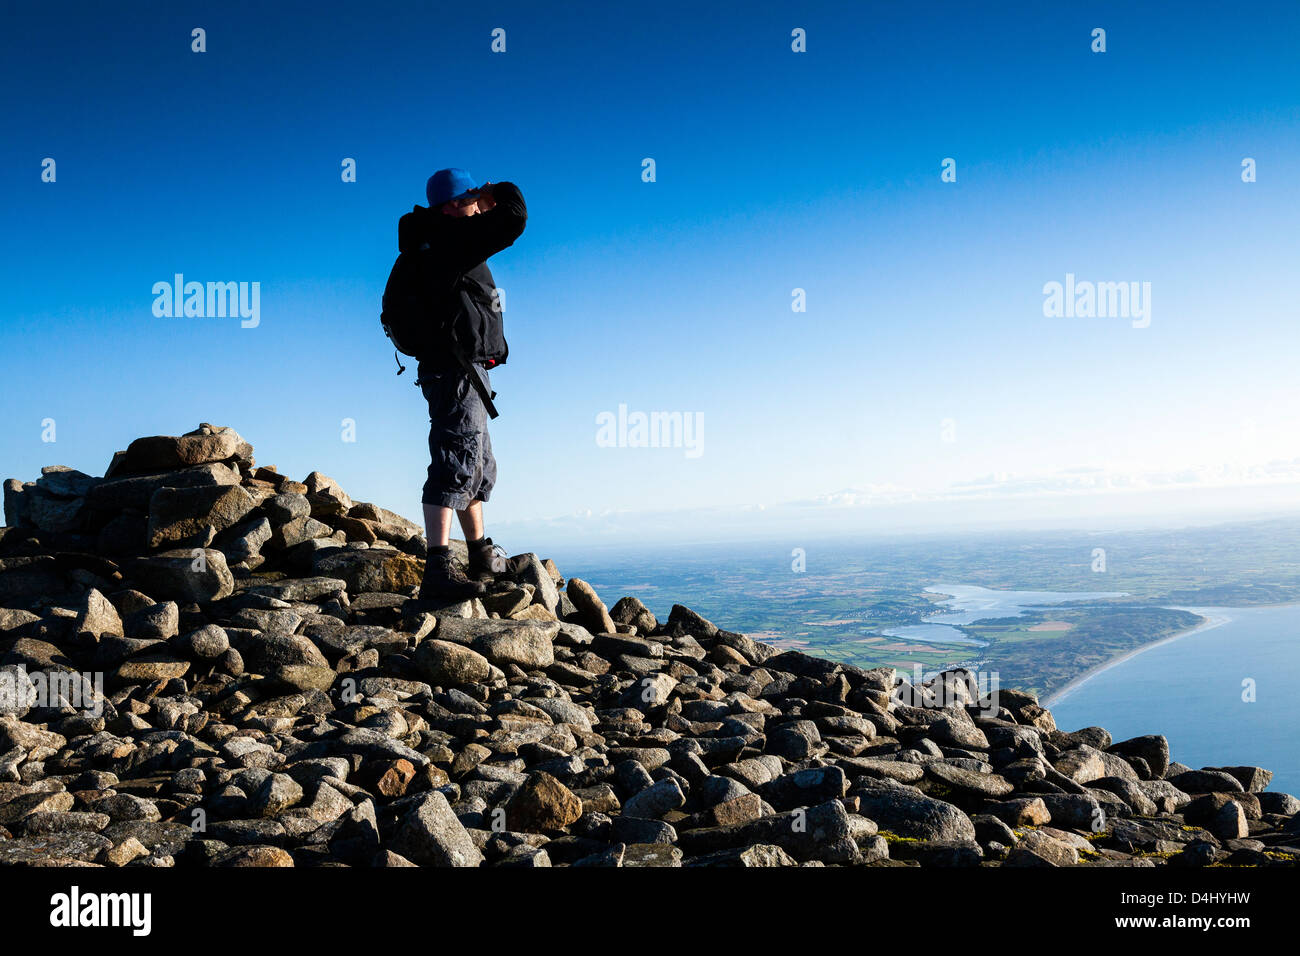 A mountaineer on top of a mountain. - Stock Image